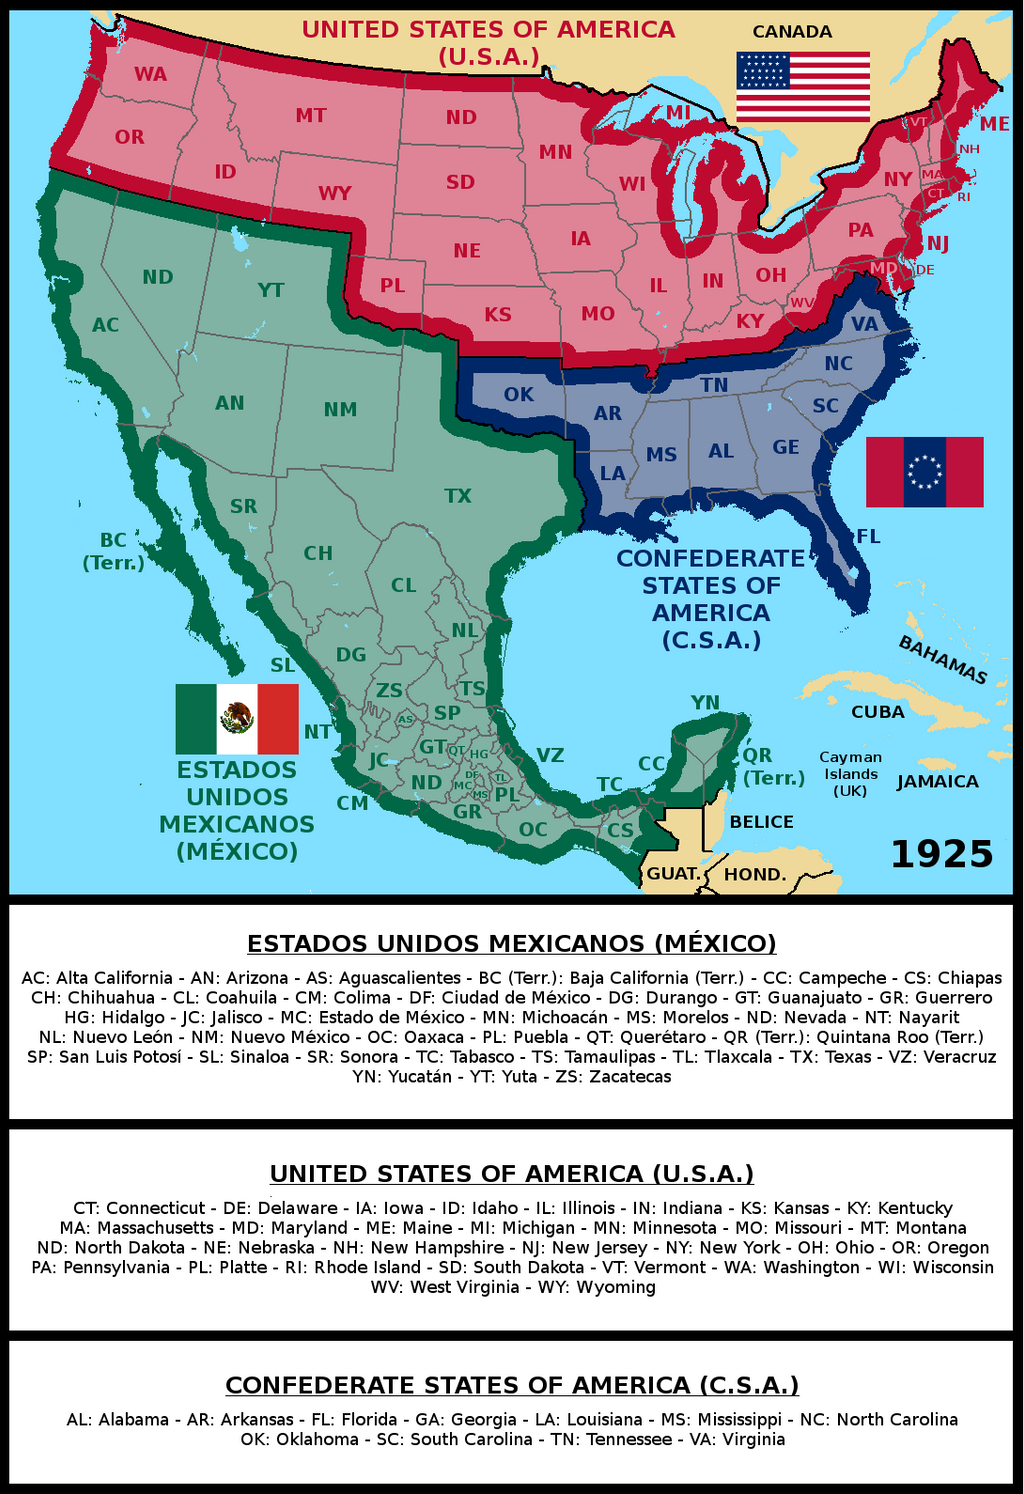 Greater Mexico, USA and CSA (1925) by matritum on DeviantArt on mexico political map, usa and usa, usa and california, usa and mexica map, usa and belgium map, usa and haiti map, usa and latin america map, usa and north korea map, usa and spain map, usa and canada map, usa and italy map, usa and cuba map, usa and carribean map, usa and texas map, usa and cabo san lucas map, usa and colorado map, usa and philippines map, usa and brazil map, usa and el salvador map, usa and world map,